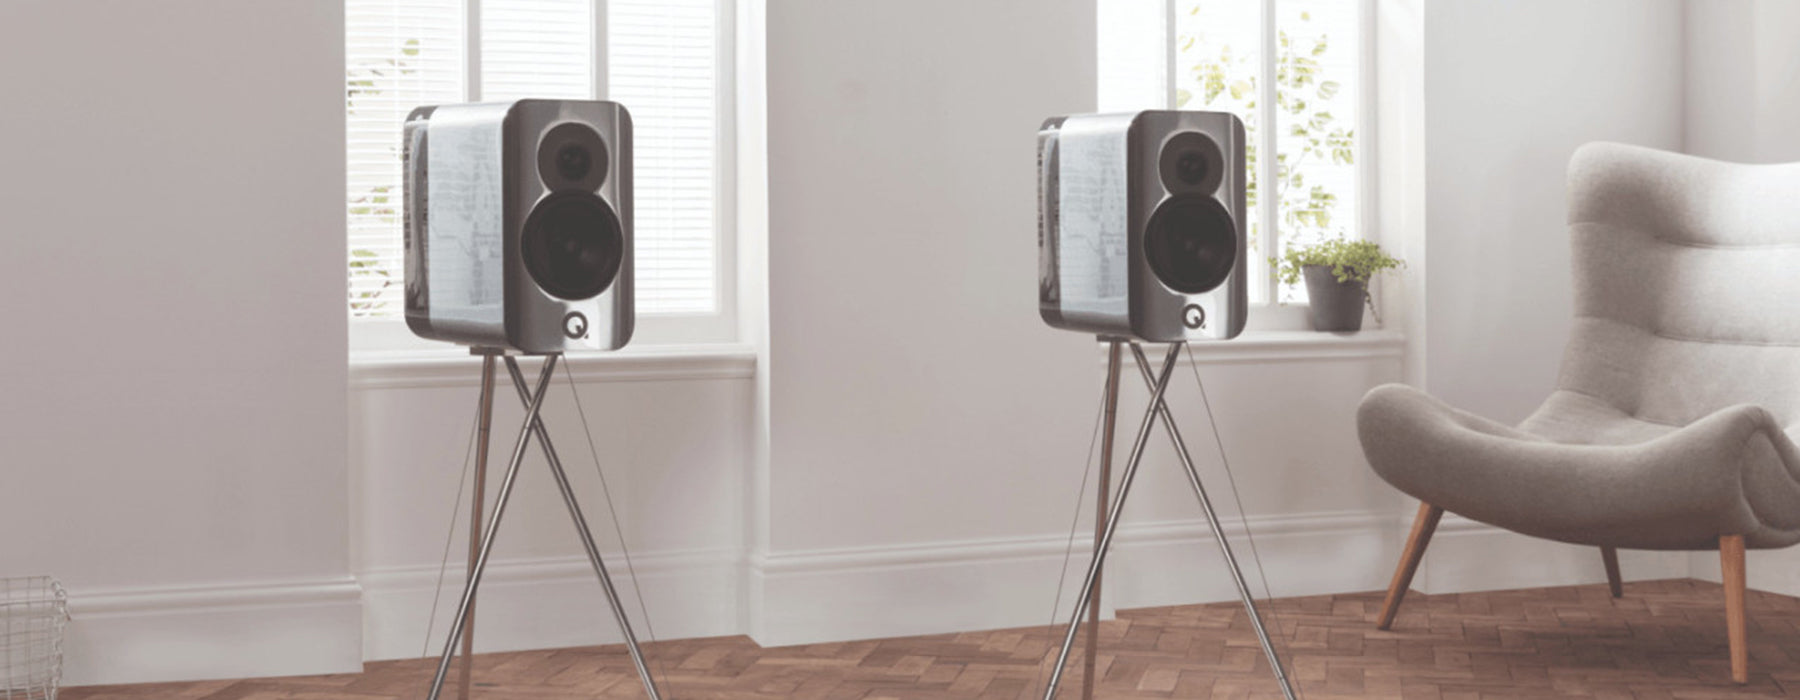 Standmount Speakers